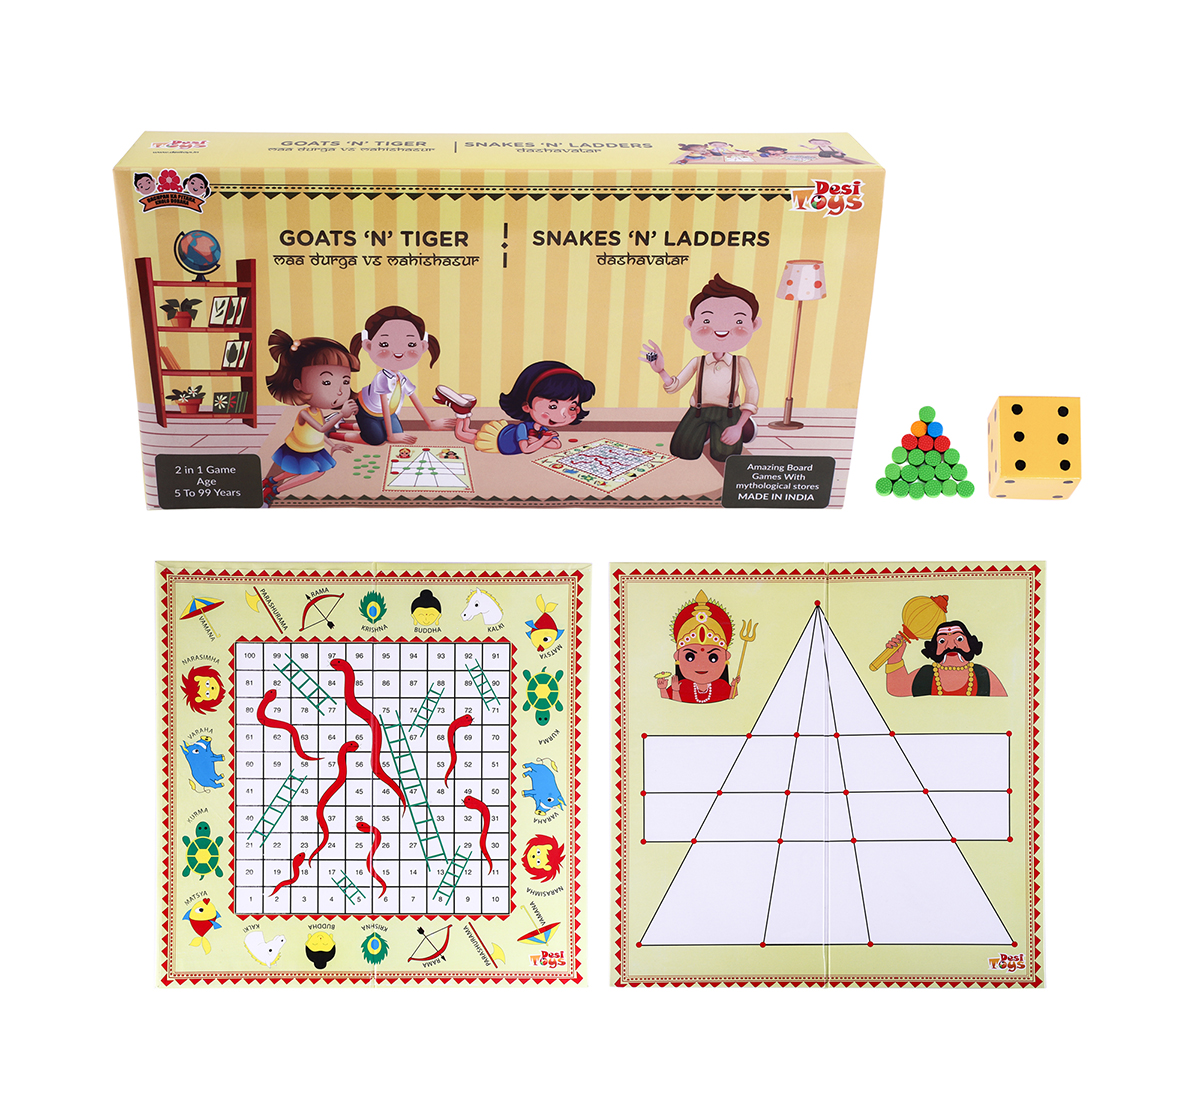 Desi Toys | Desi Toys 2 In 1 Strategy Game Of Goats N Tigers & Snakes N Ladders Classic Games for Kids age 5Y+